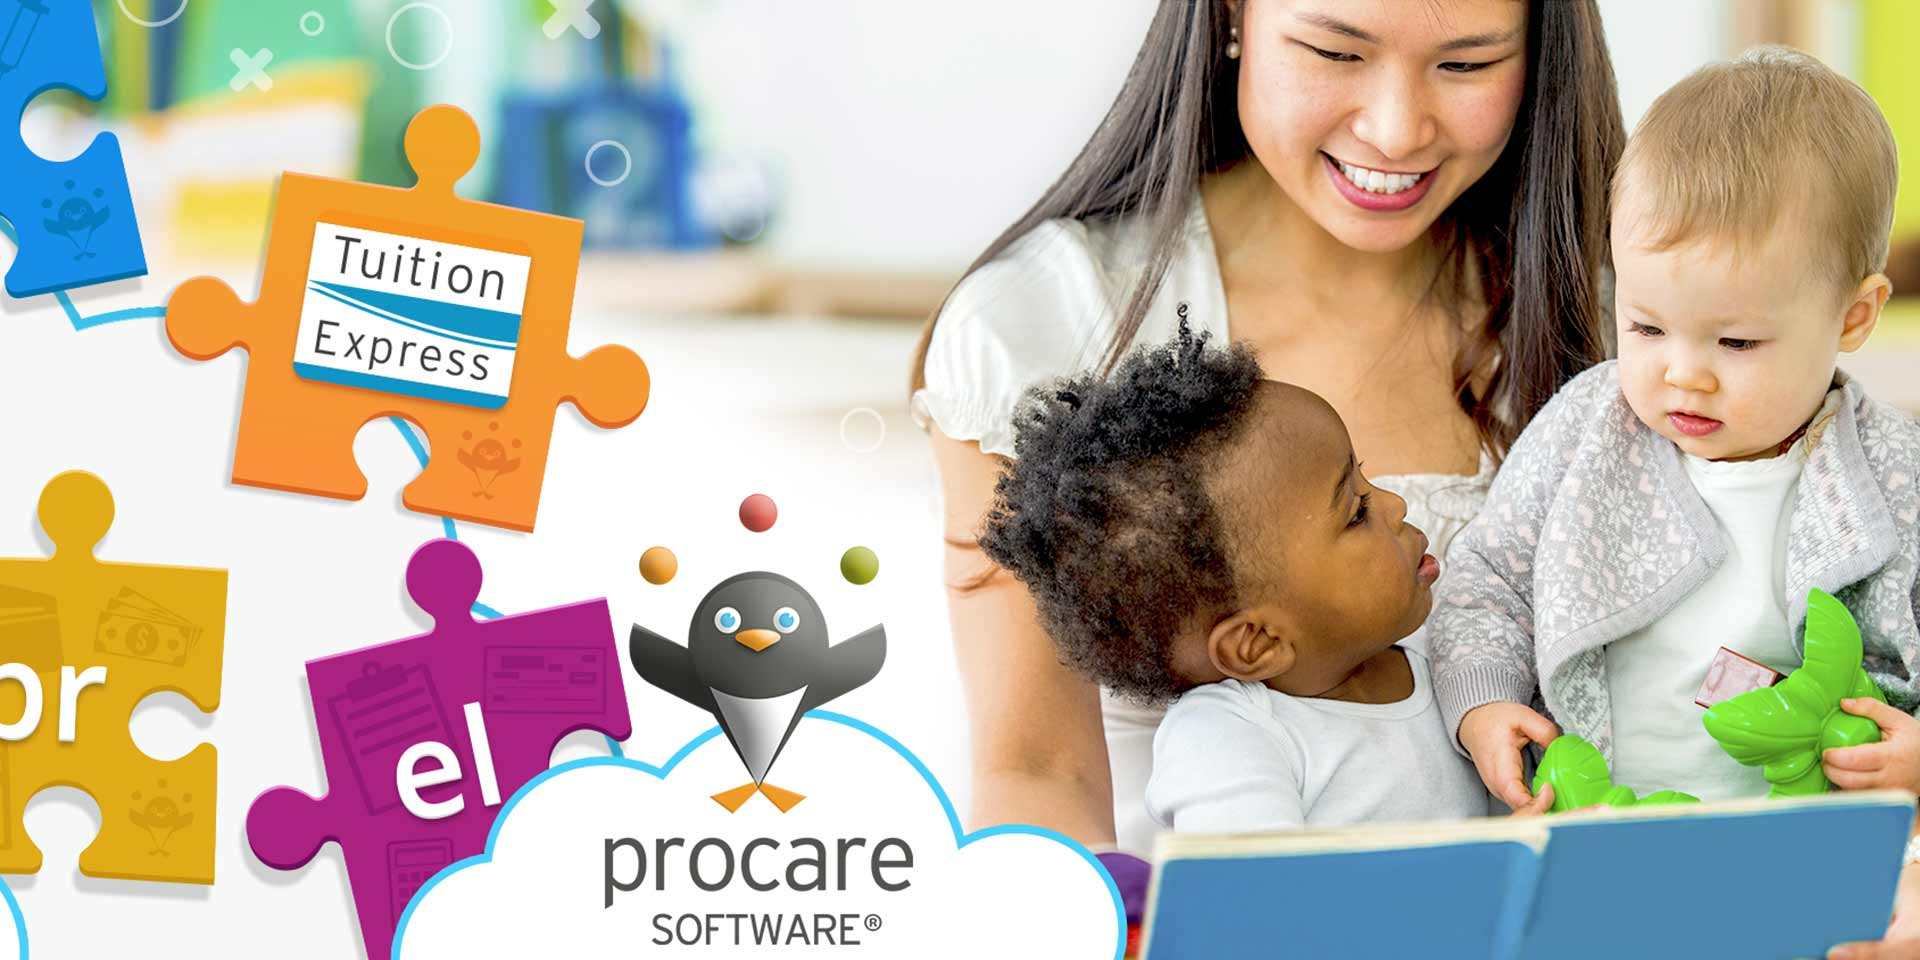 Follow Procare Software on Facebook